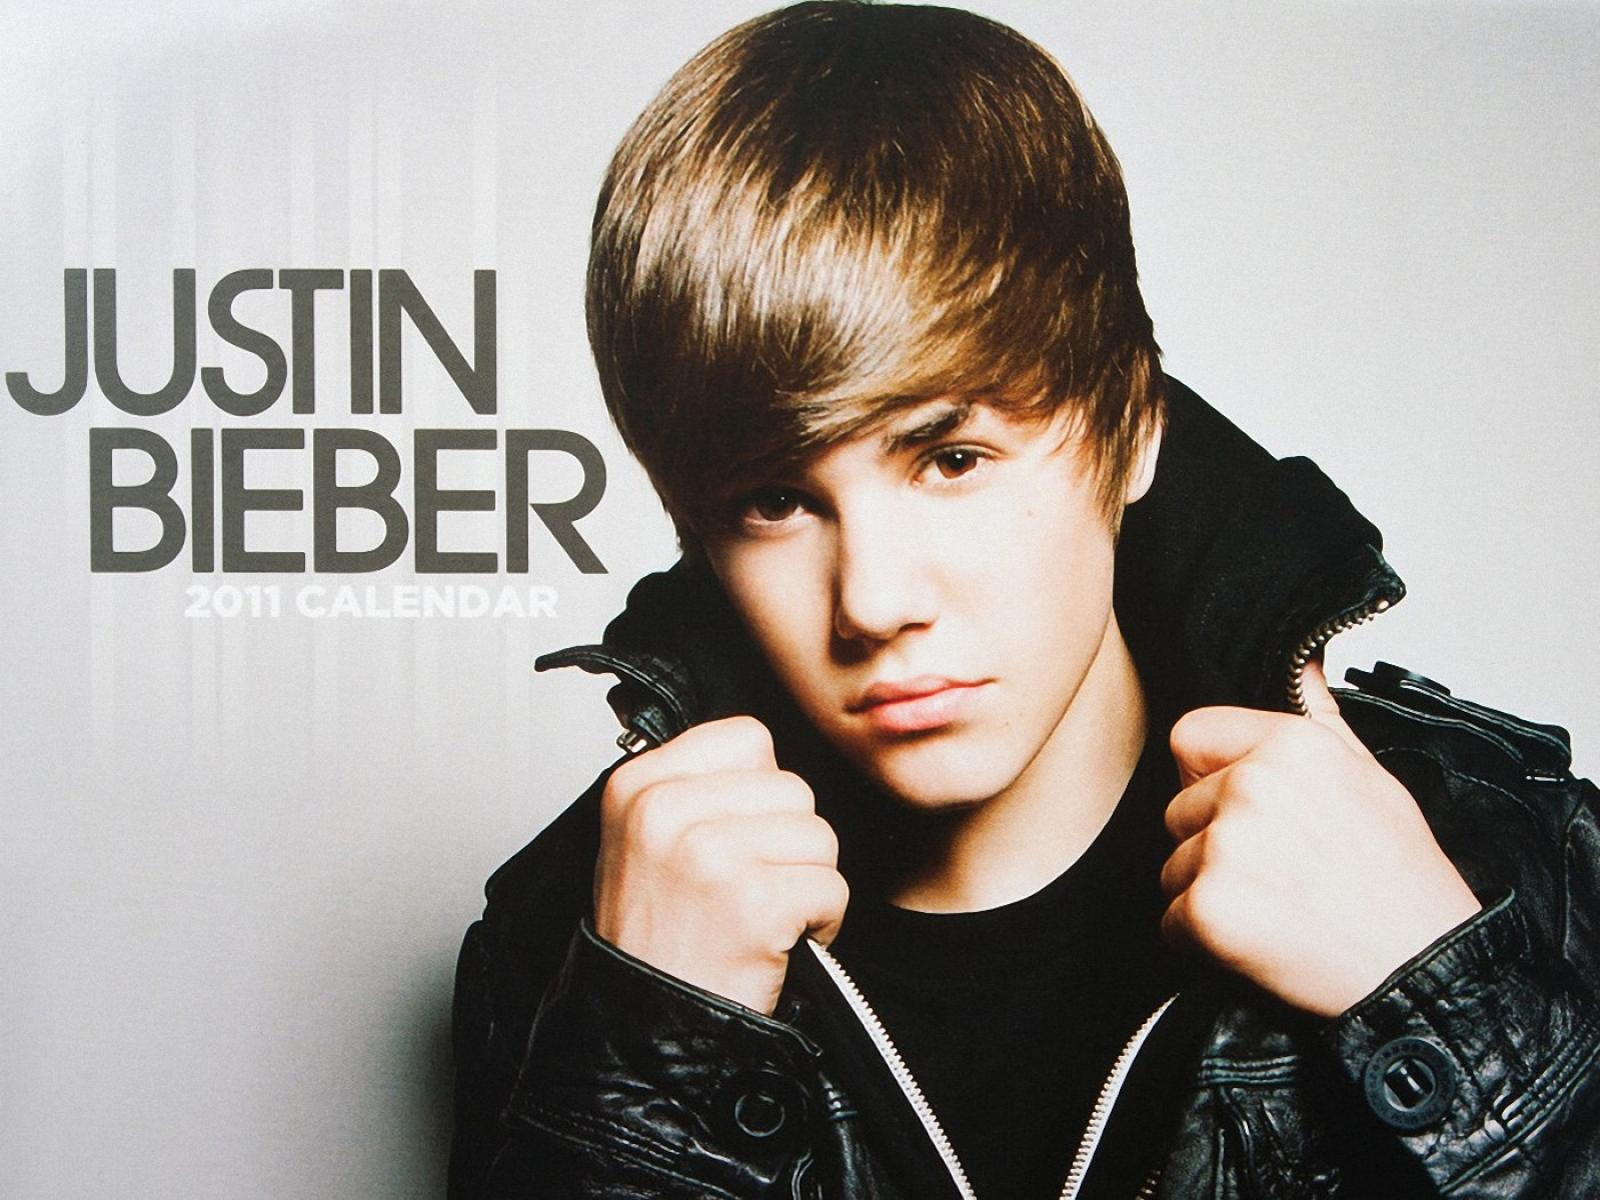 Justin Bieber Sexy Wallpapers